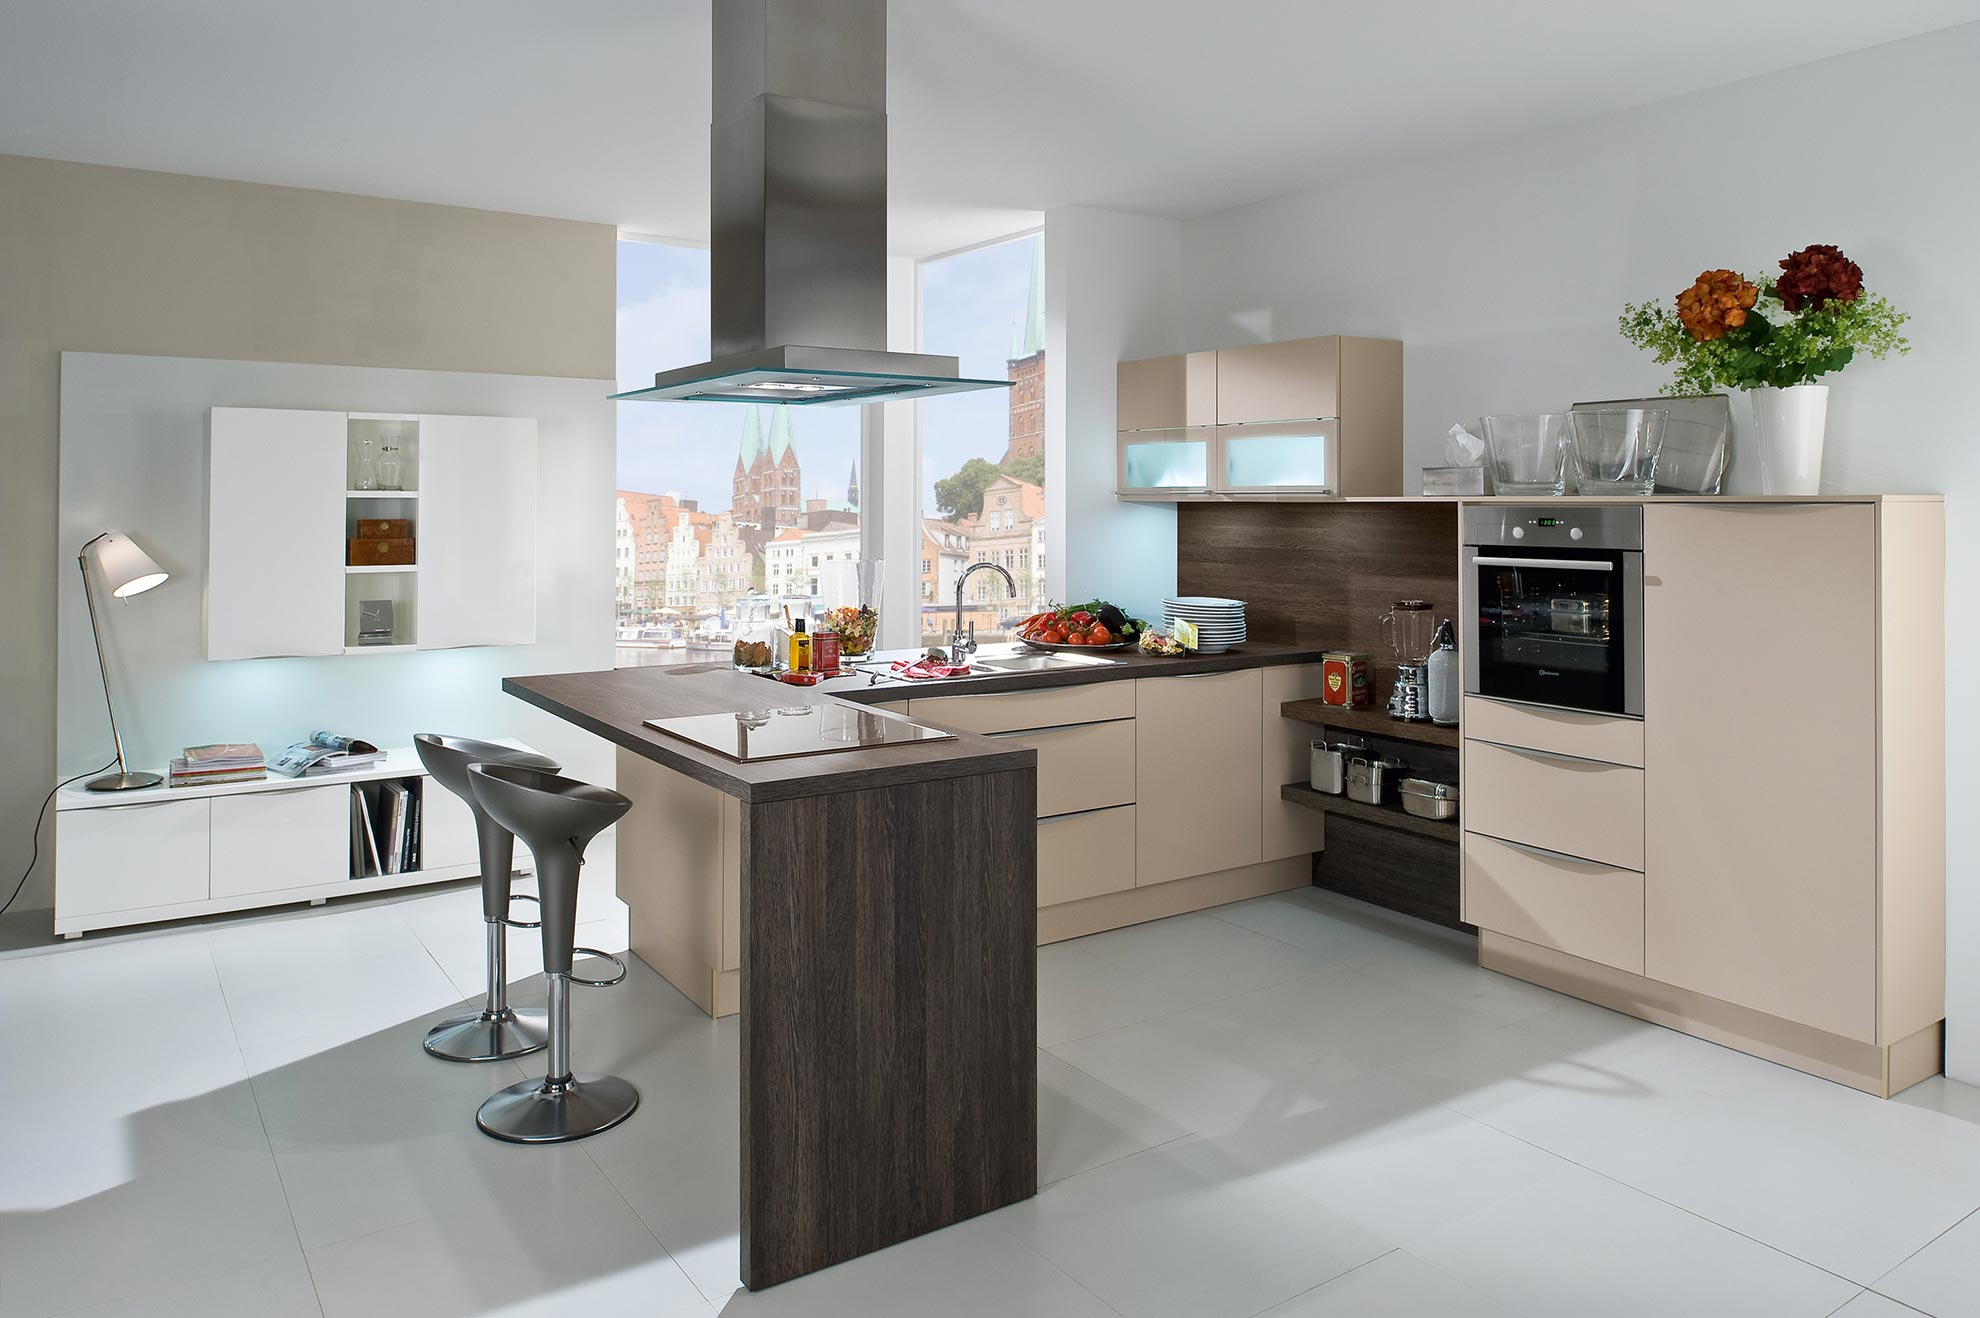 Kitchens bedford bedfordshire fitted kitchen installation for Agencement cuisine en l